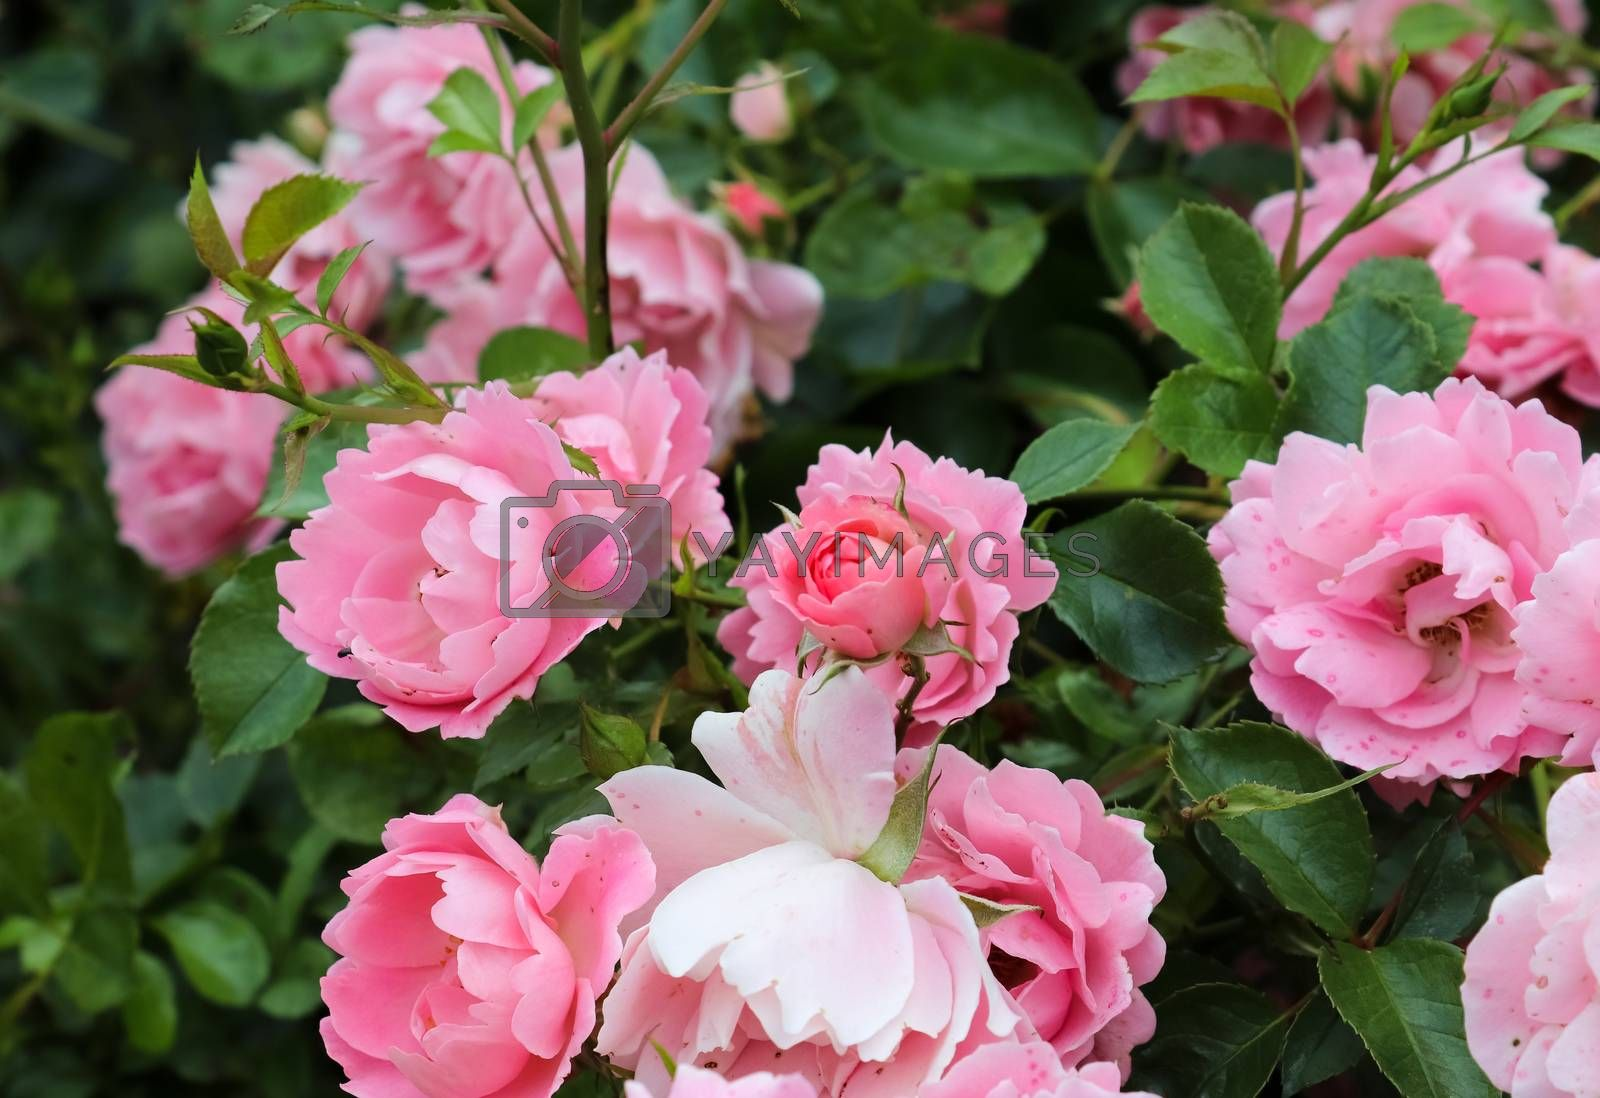 Pink and colorful rose flowers in a roses garden with a soft focus background.